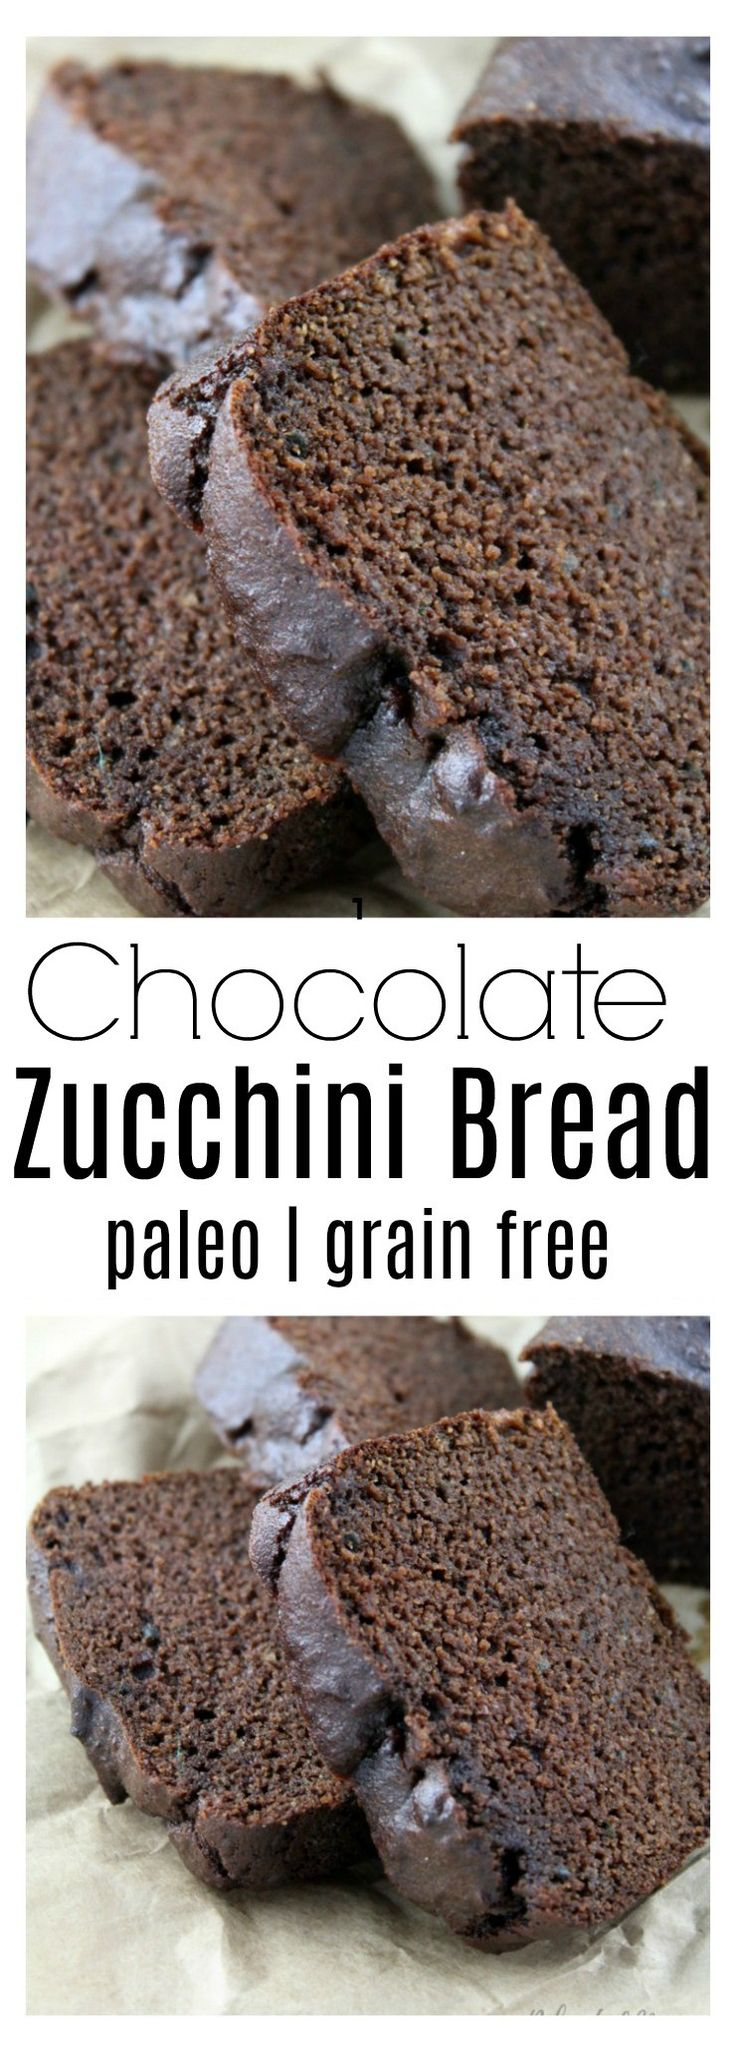 Moist and delicious paleo chocolate zucchini bread with simple ingredients, sweetened with maple syrup.